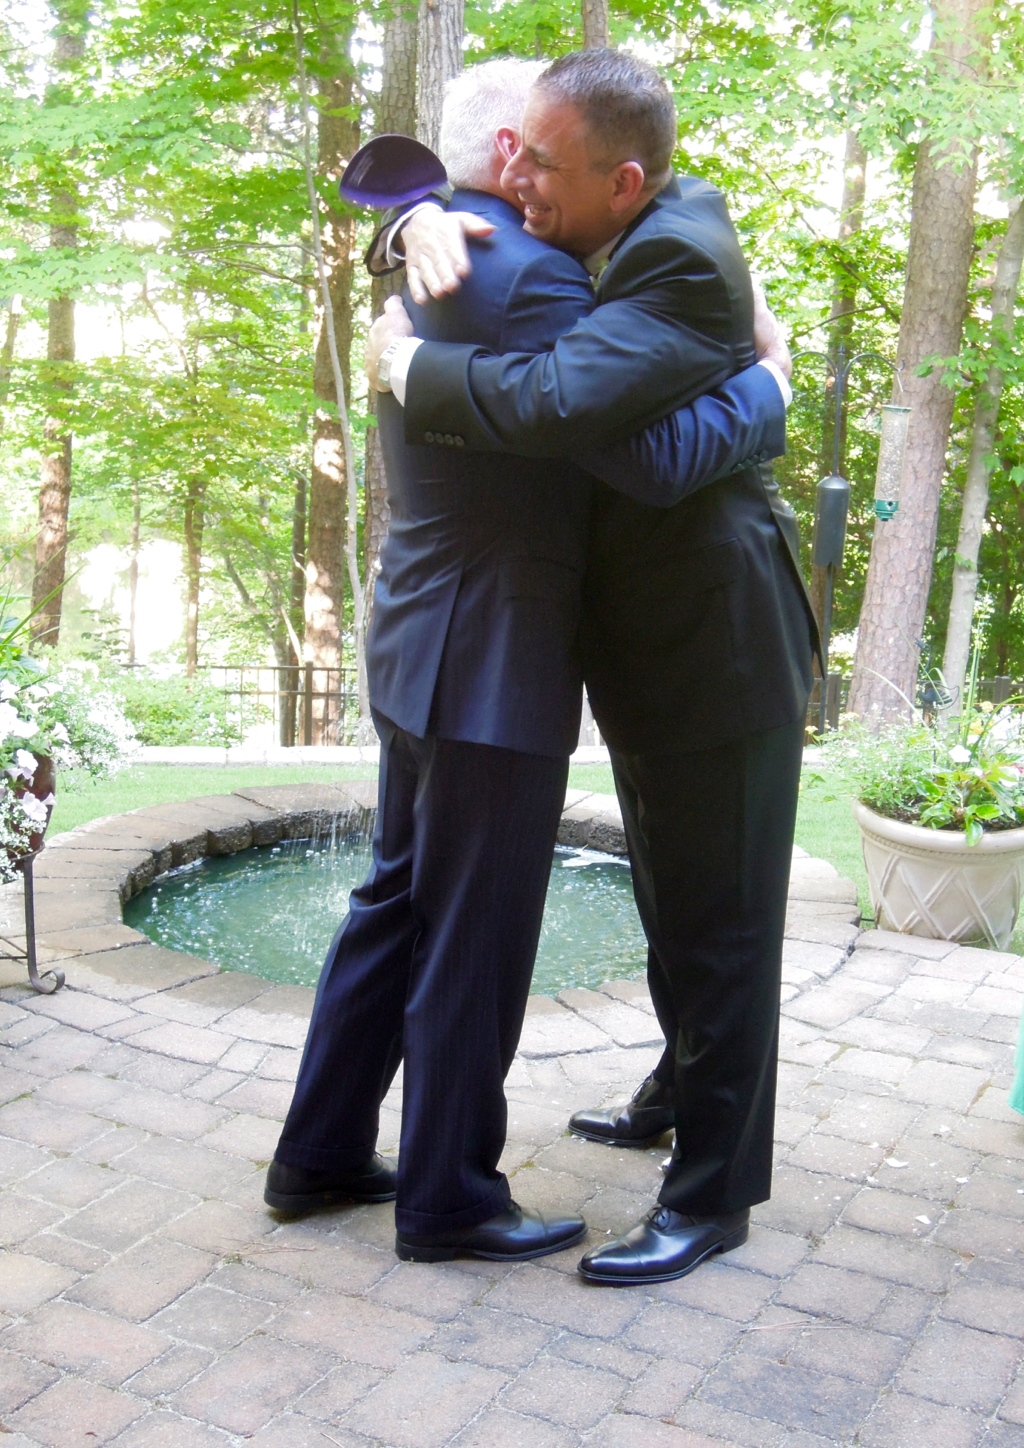 The yarmulkes went flying during the hug!